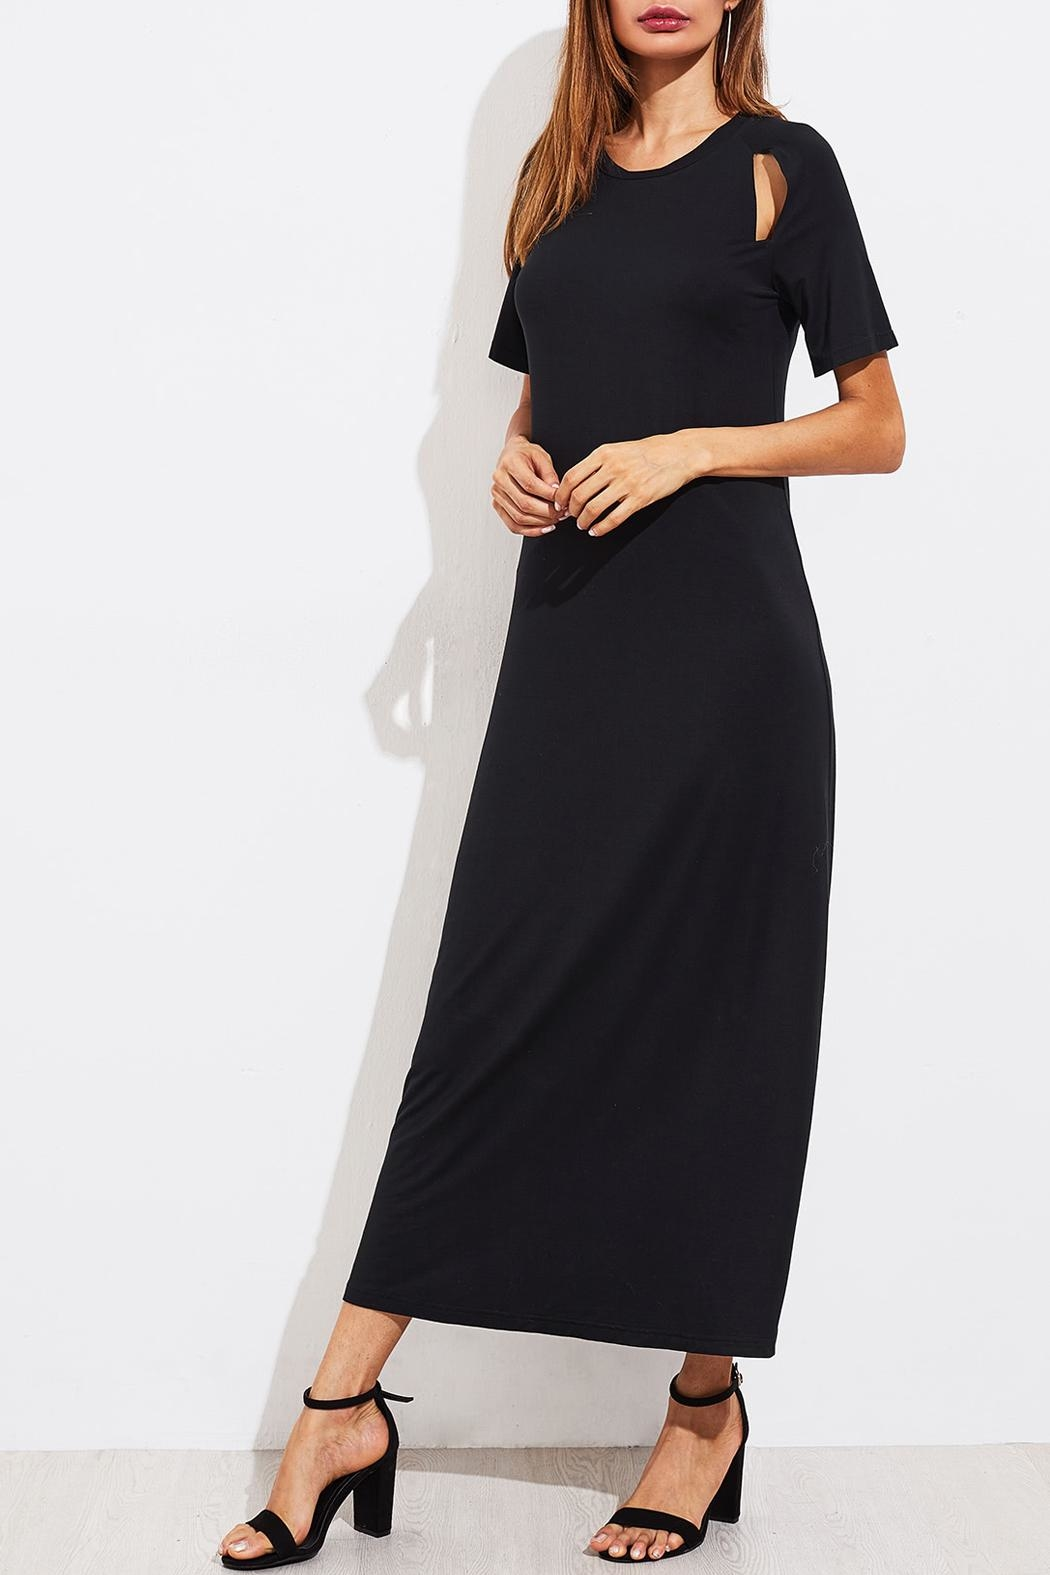 House of Atelier Cutout Black Dress - Front Full Image